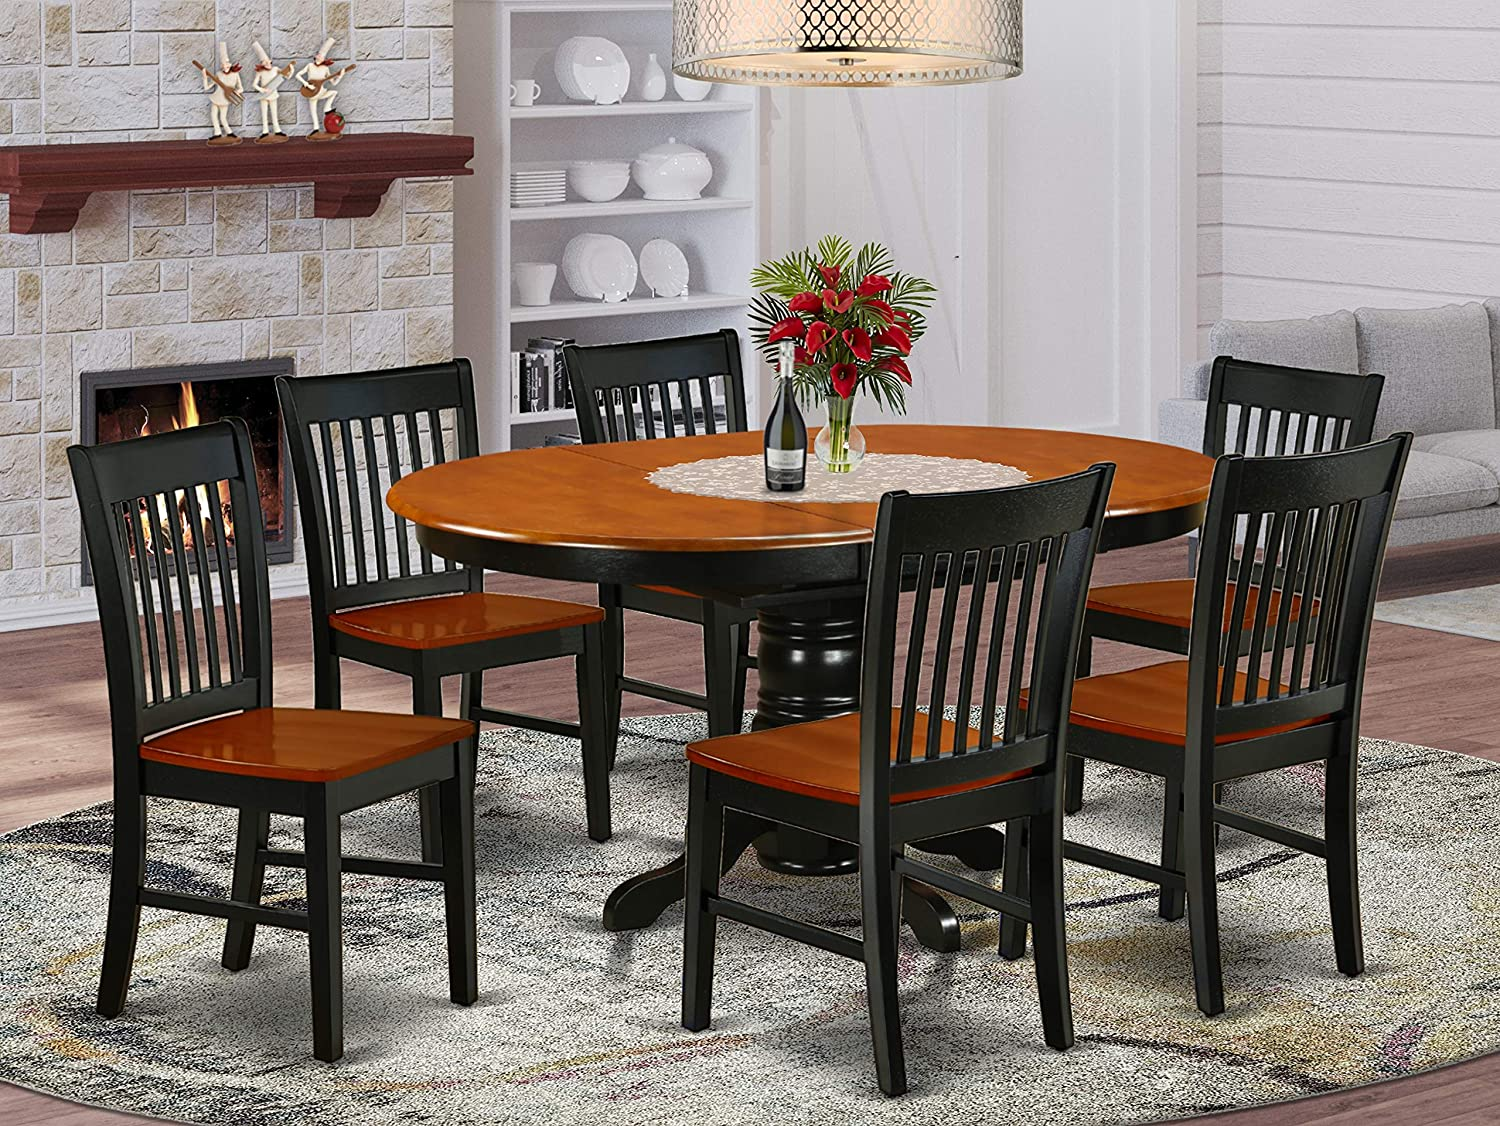 Buy 9Pc Oval 9/9 Family Table With 9 In Leaf And 9 Wood Seat ...